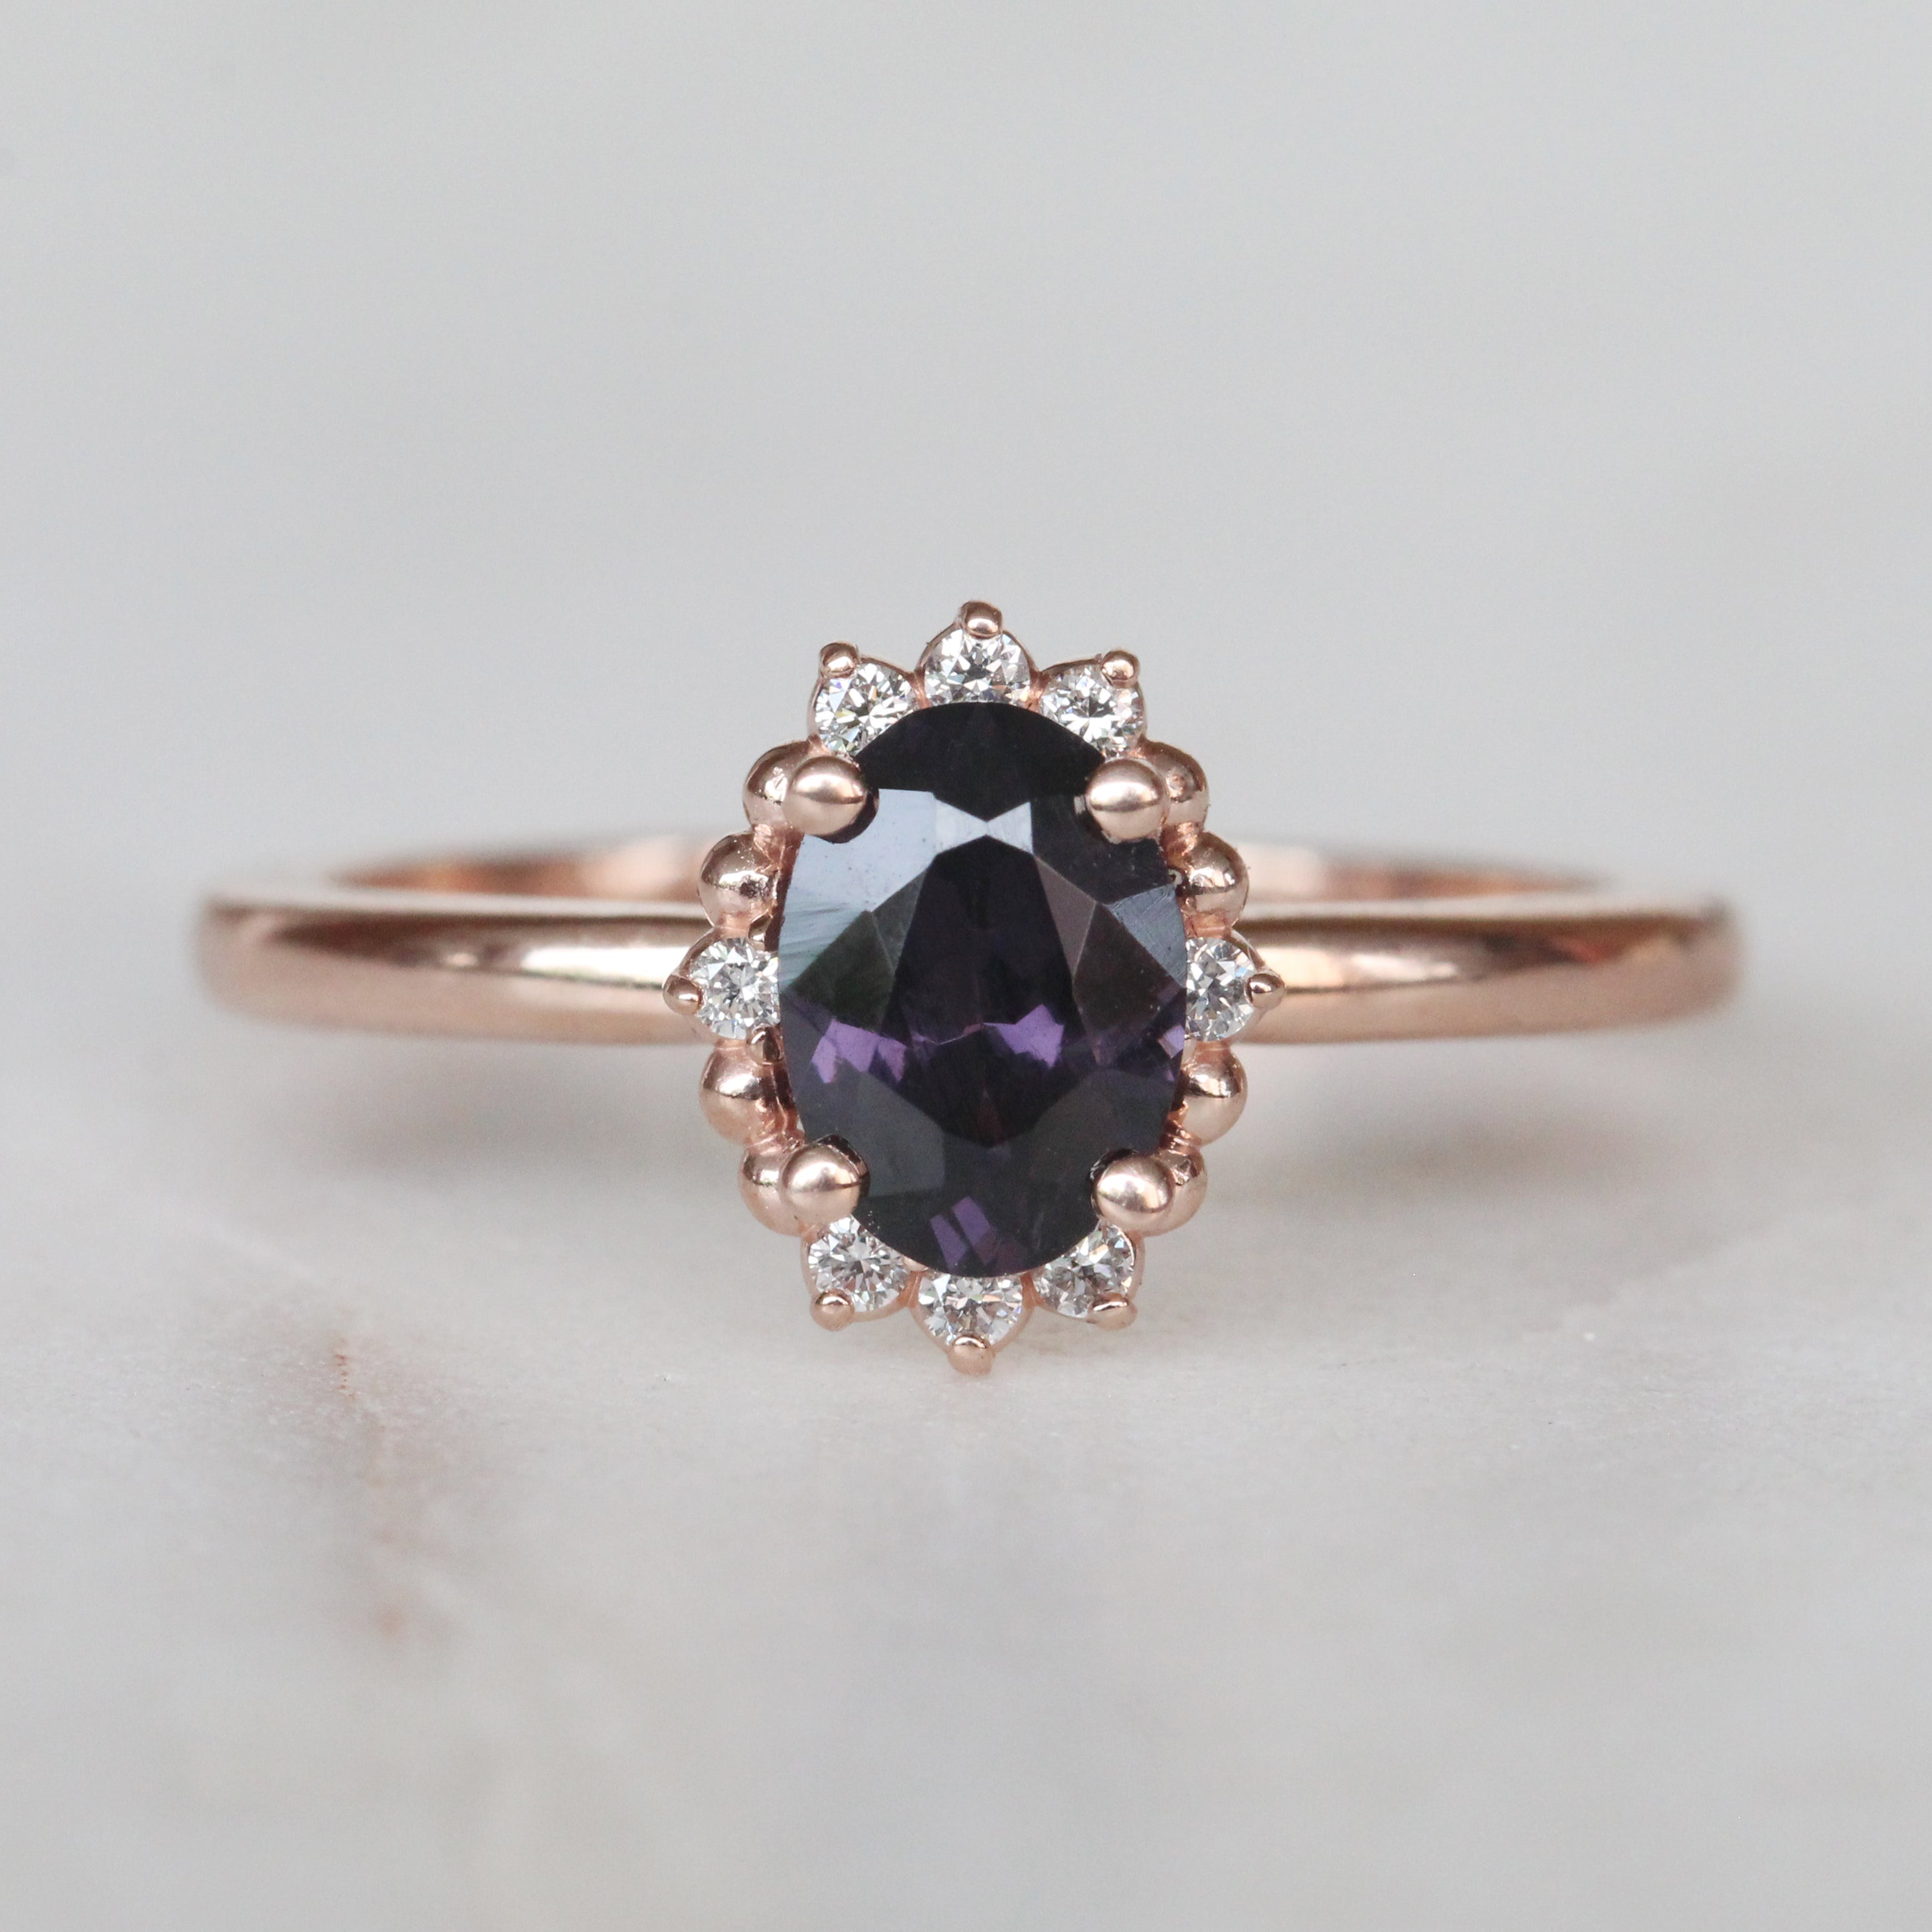 Lilac ring with dark plum purple natural Spinel and halo of white natural diamonds - 10k rose gold - Ready to size and ship - Salt & Pepper Celestial Diamond Engagement Rings and Wedding Bands  by Midwinter Co.